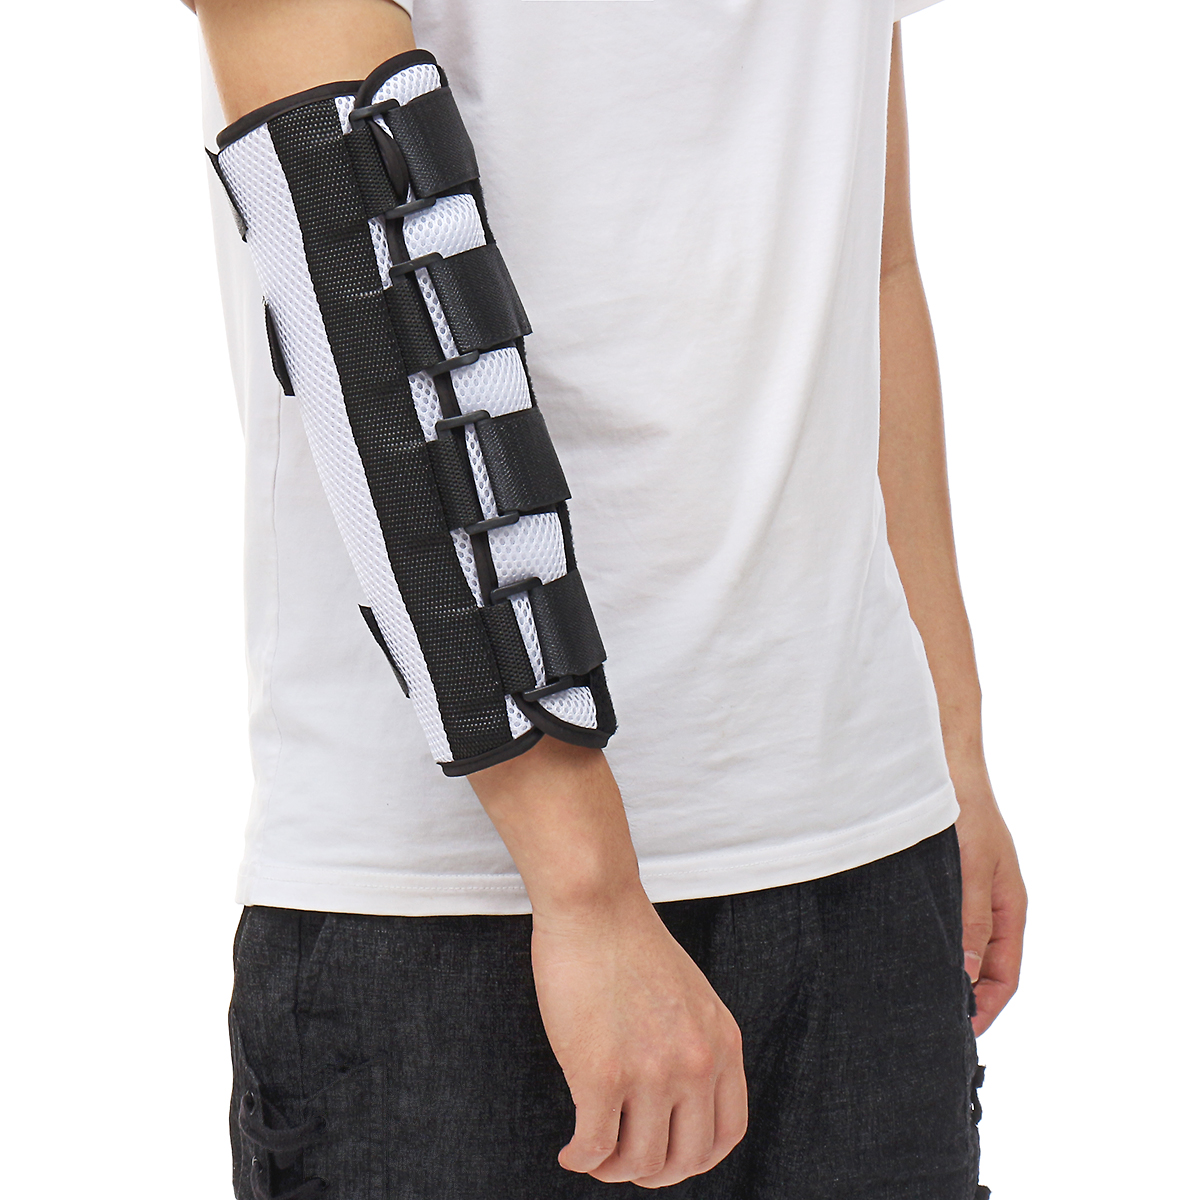 Elbow Orthosis Arm Metal Support Brace Adjustable Fracture Fixation Protector